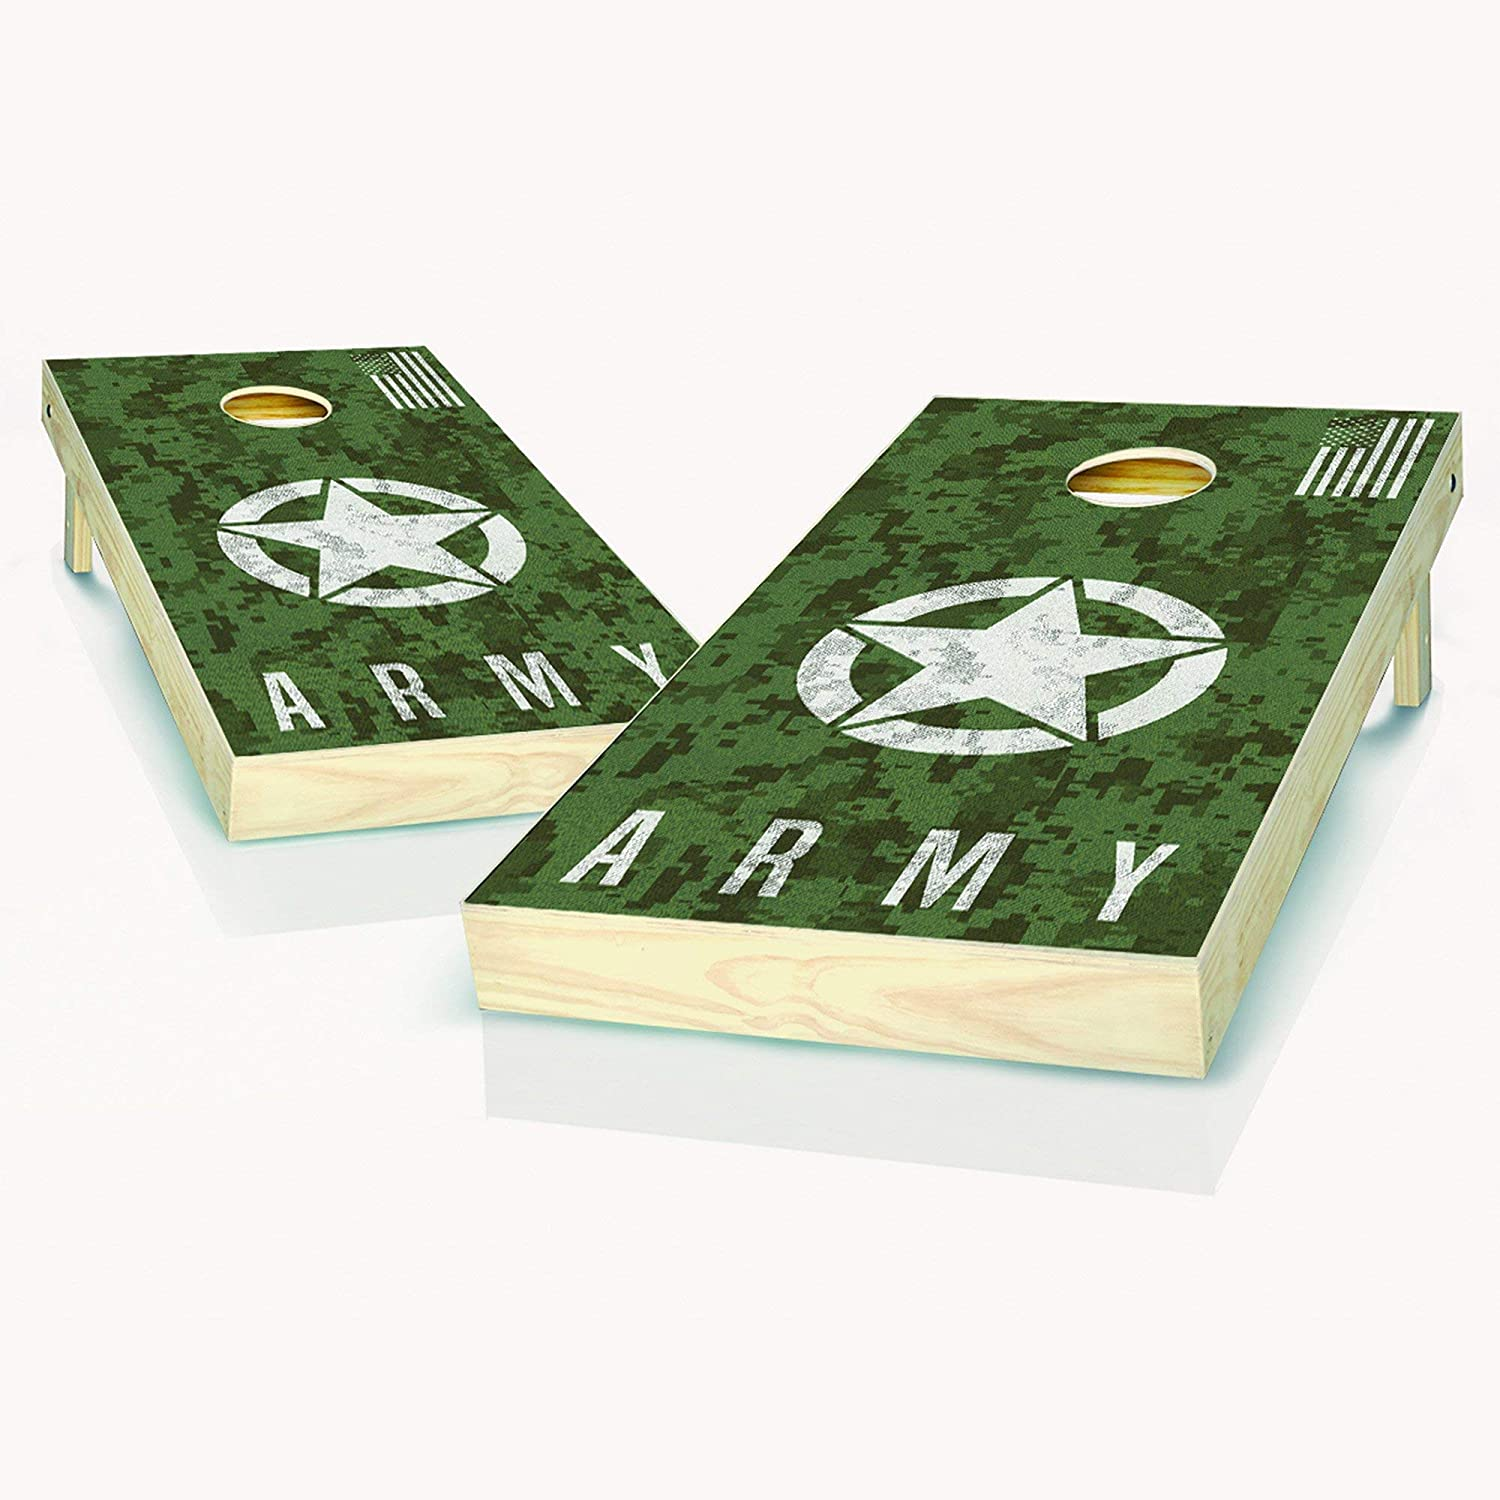 US Army Digital Free shipping on posting reviews Camo Cornhole Boards Size Regulation In 2x4 All items in the store -